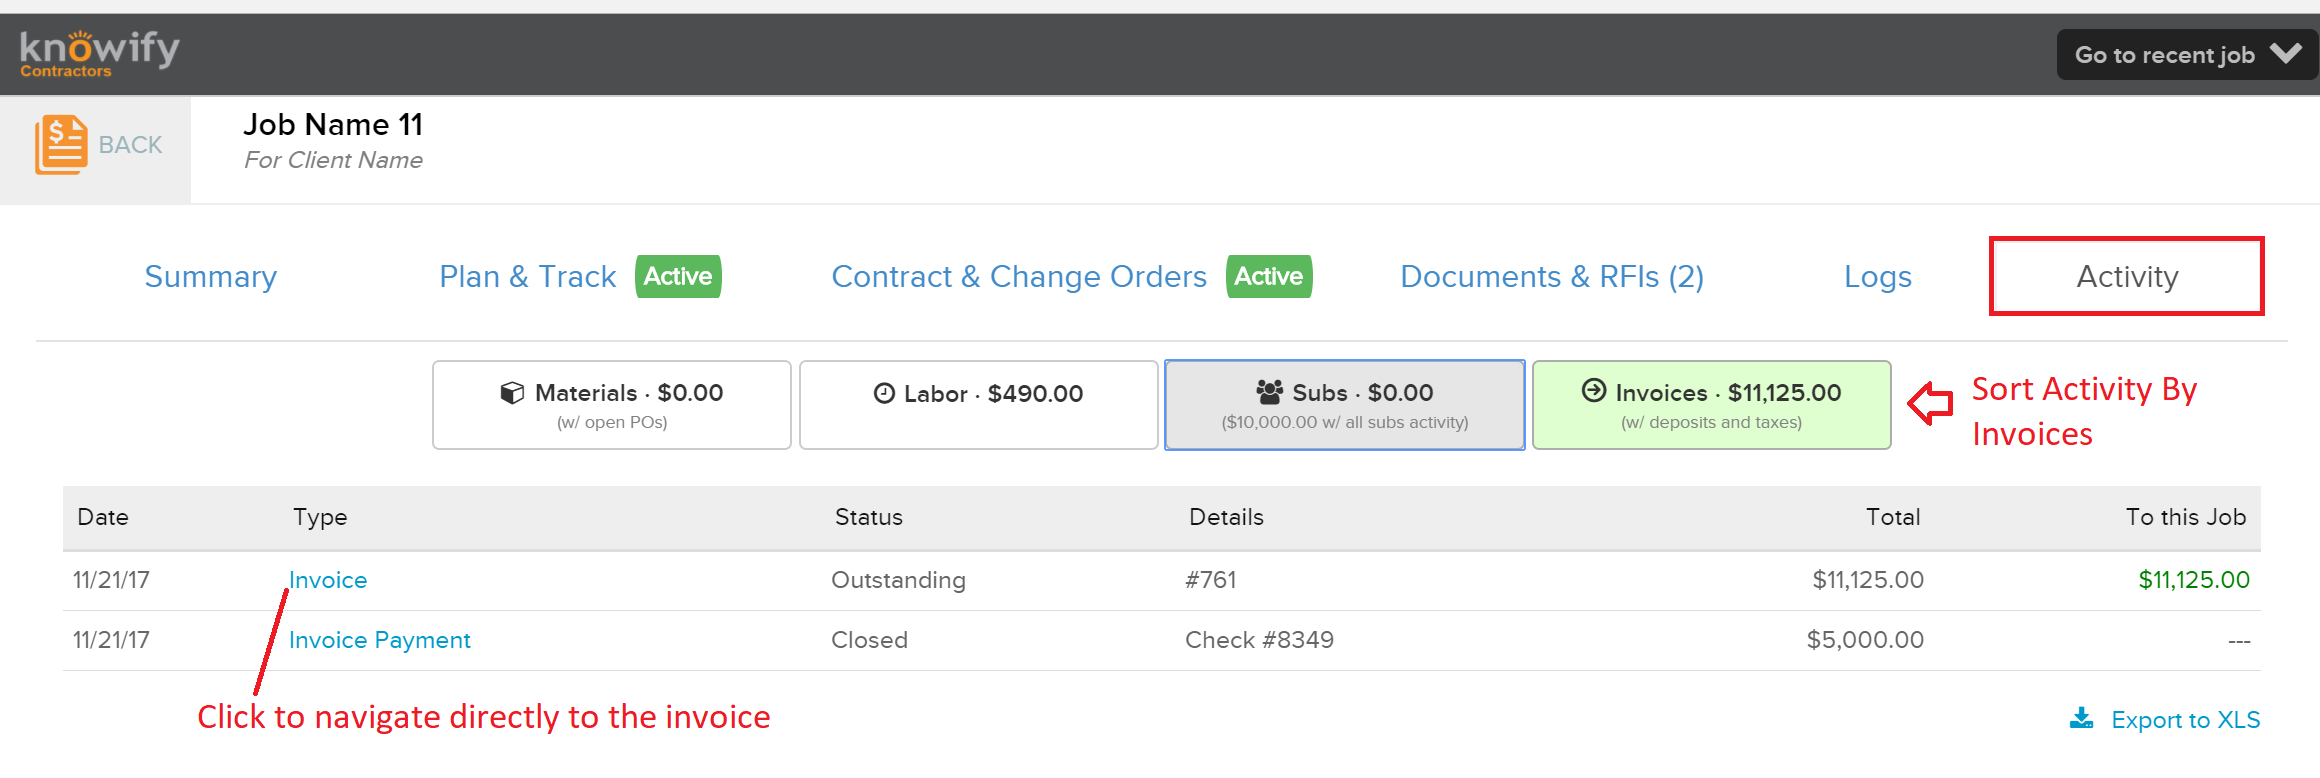 Activity_Invoices How To Delete an Invoice in Knowify